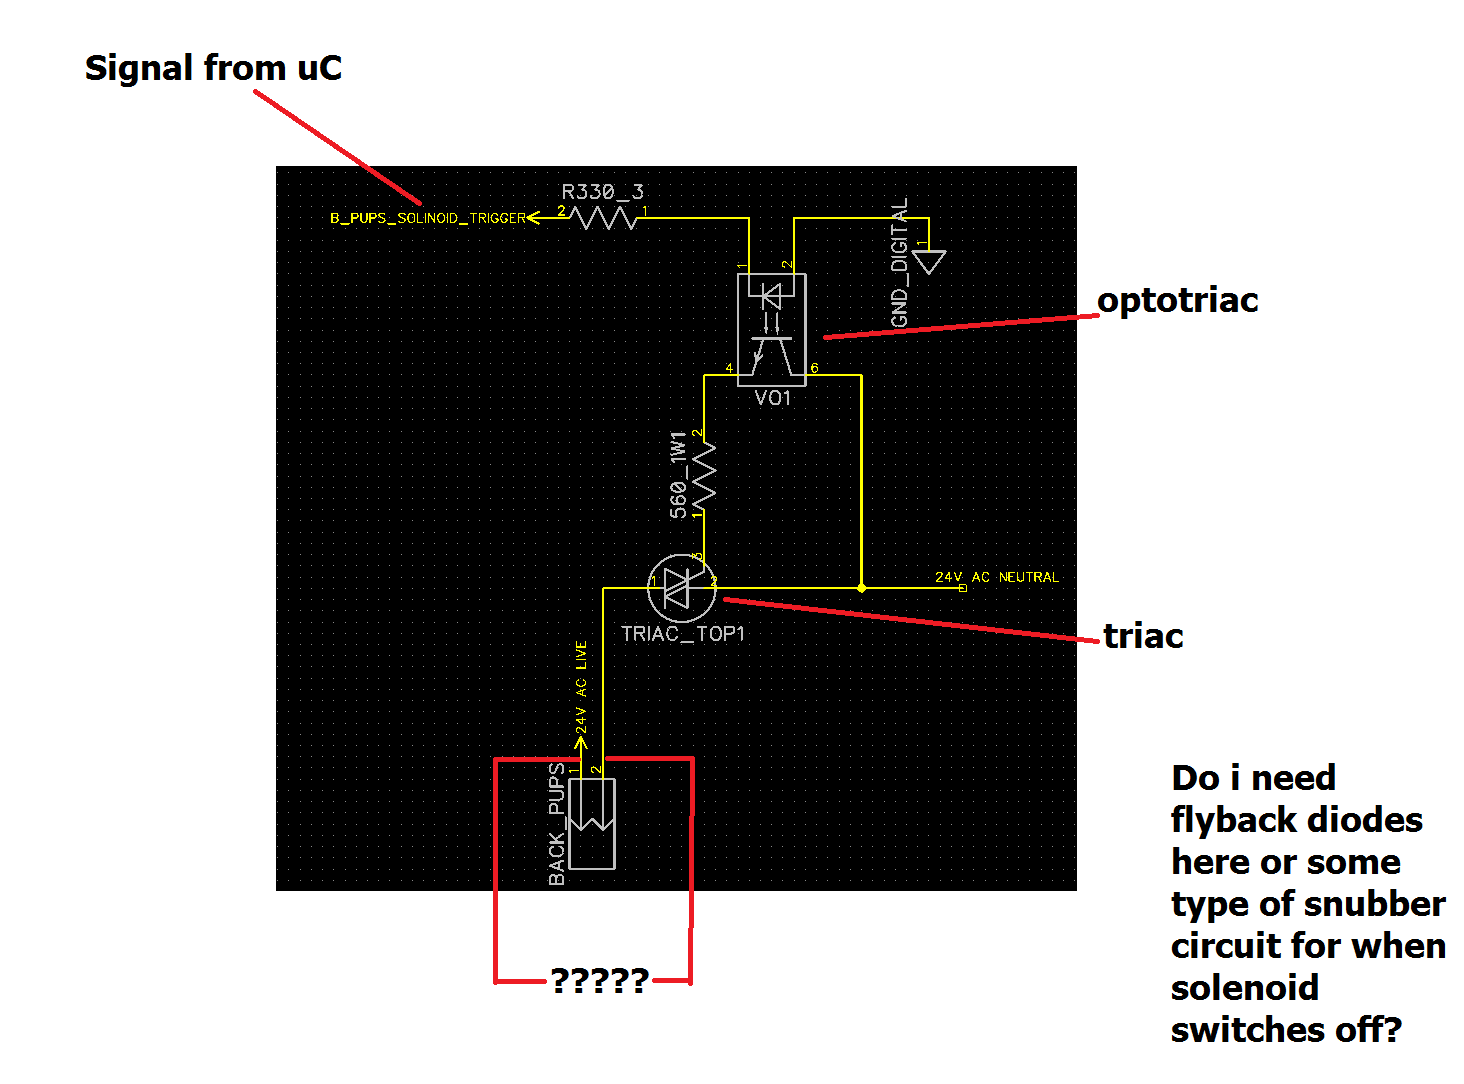 ac solenoid diagram difference between ac solenoid and dc solenoid wiring diagrams ryangi org